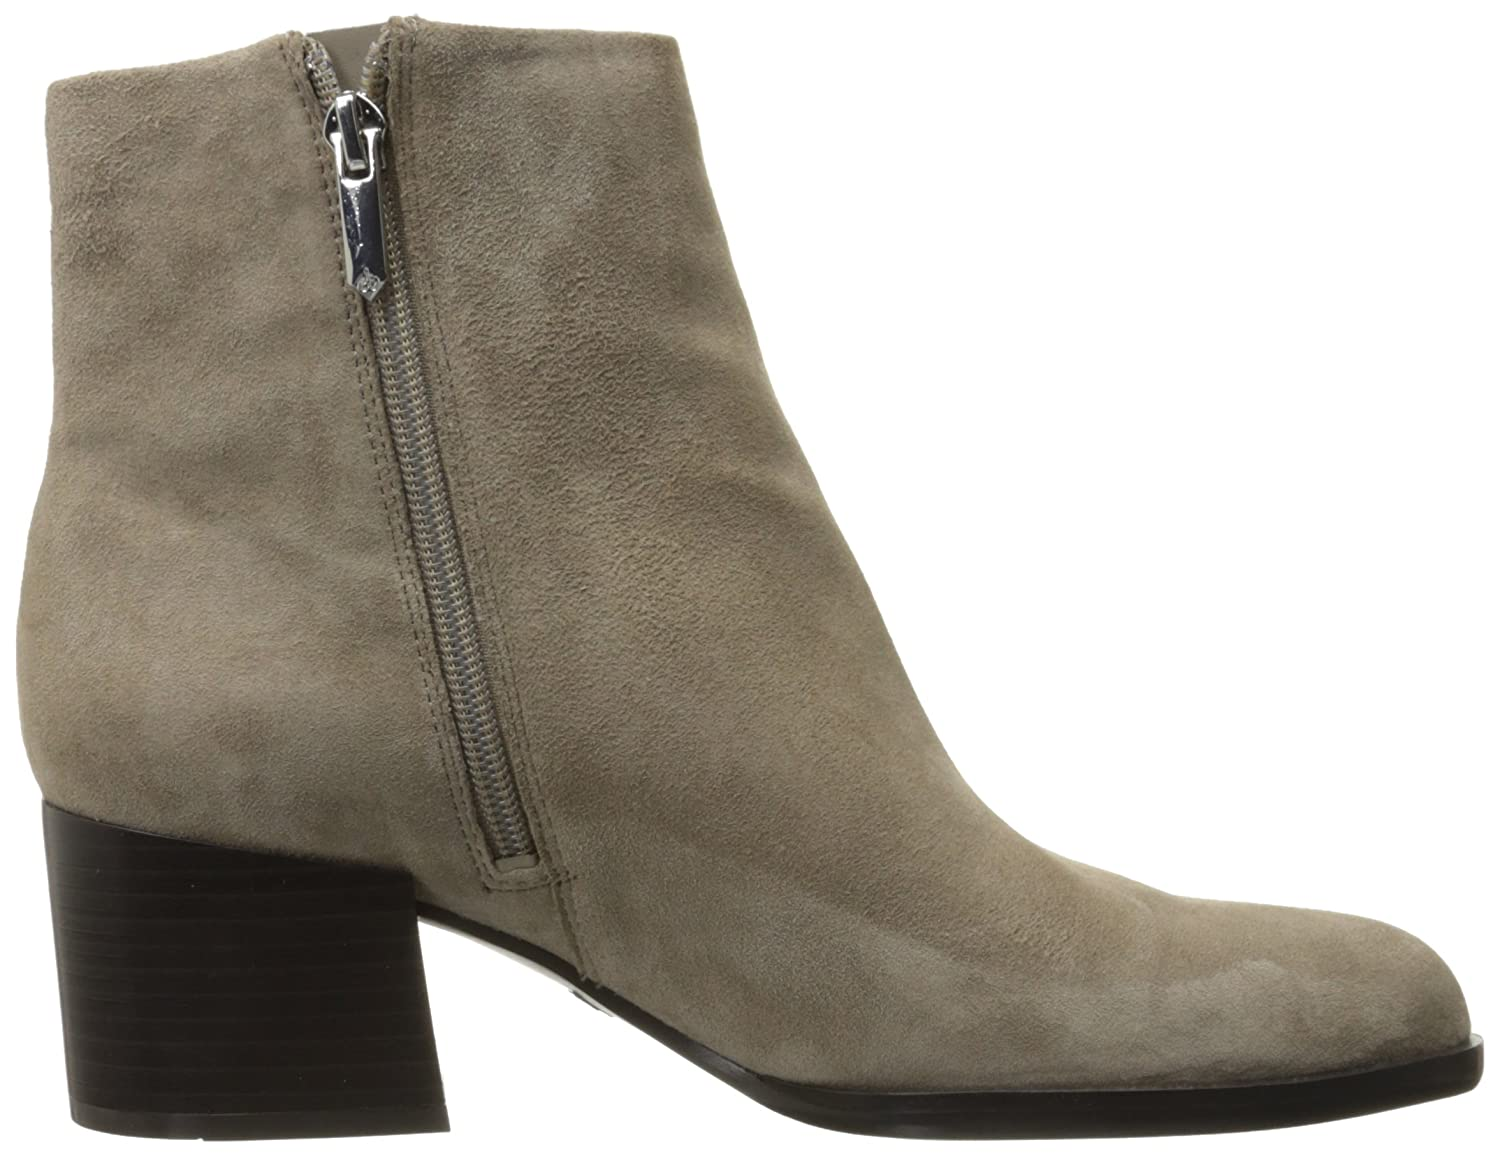 Sam Edelman Women's Joey Boot B01AYGBA5S 6 B(M) US|Putty